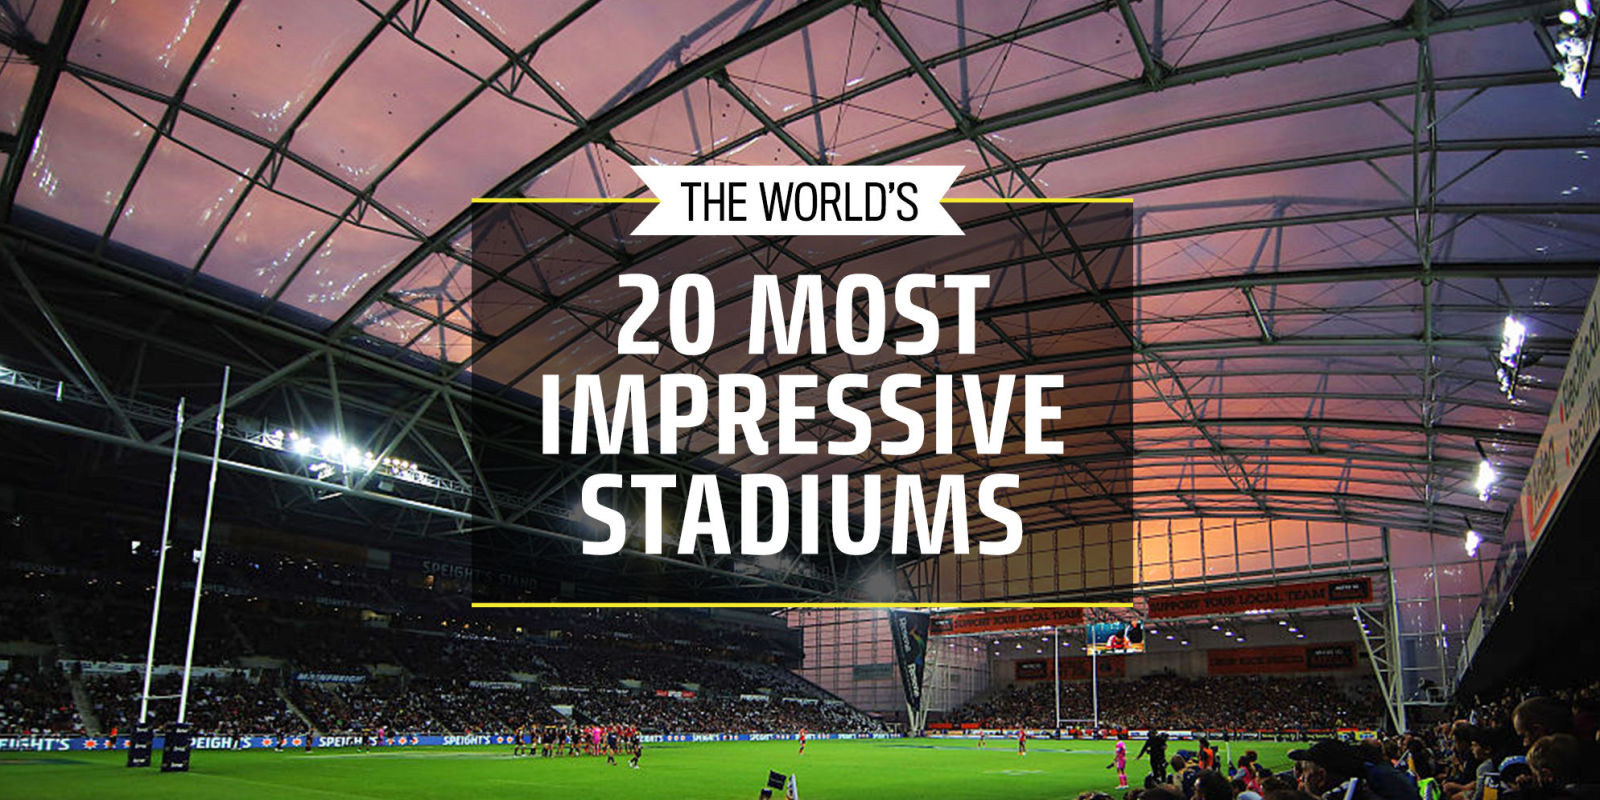 20 of the World's Most Impressive Stadiums